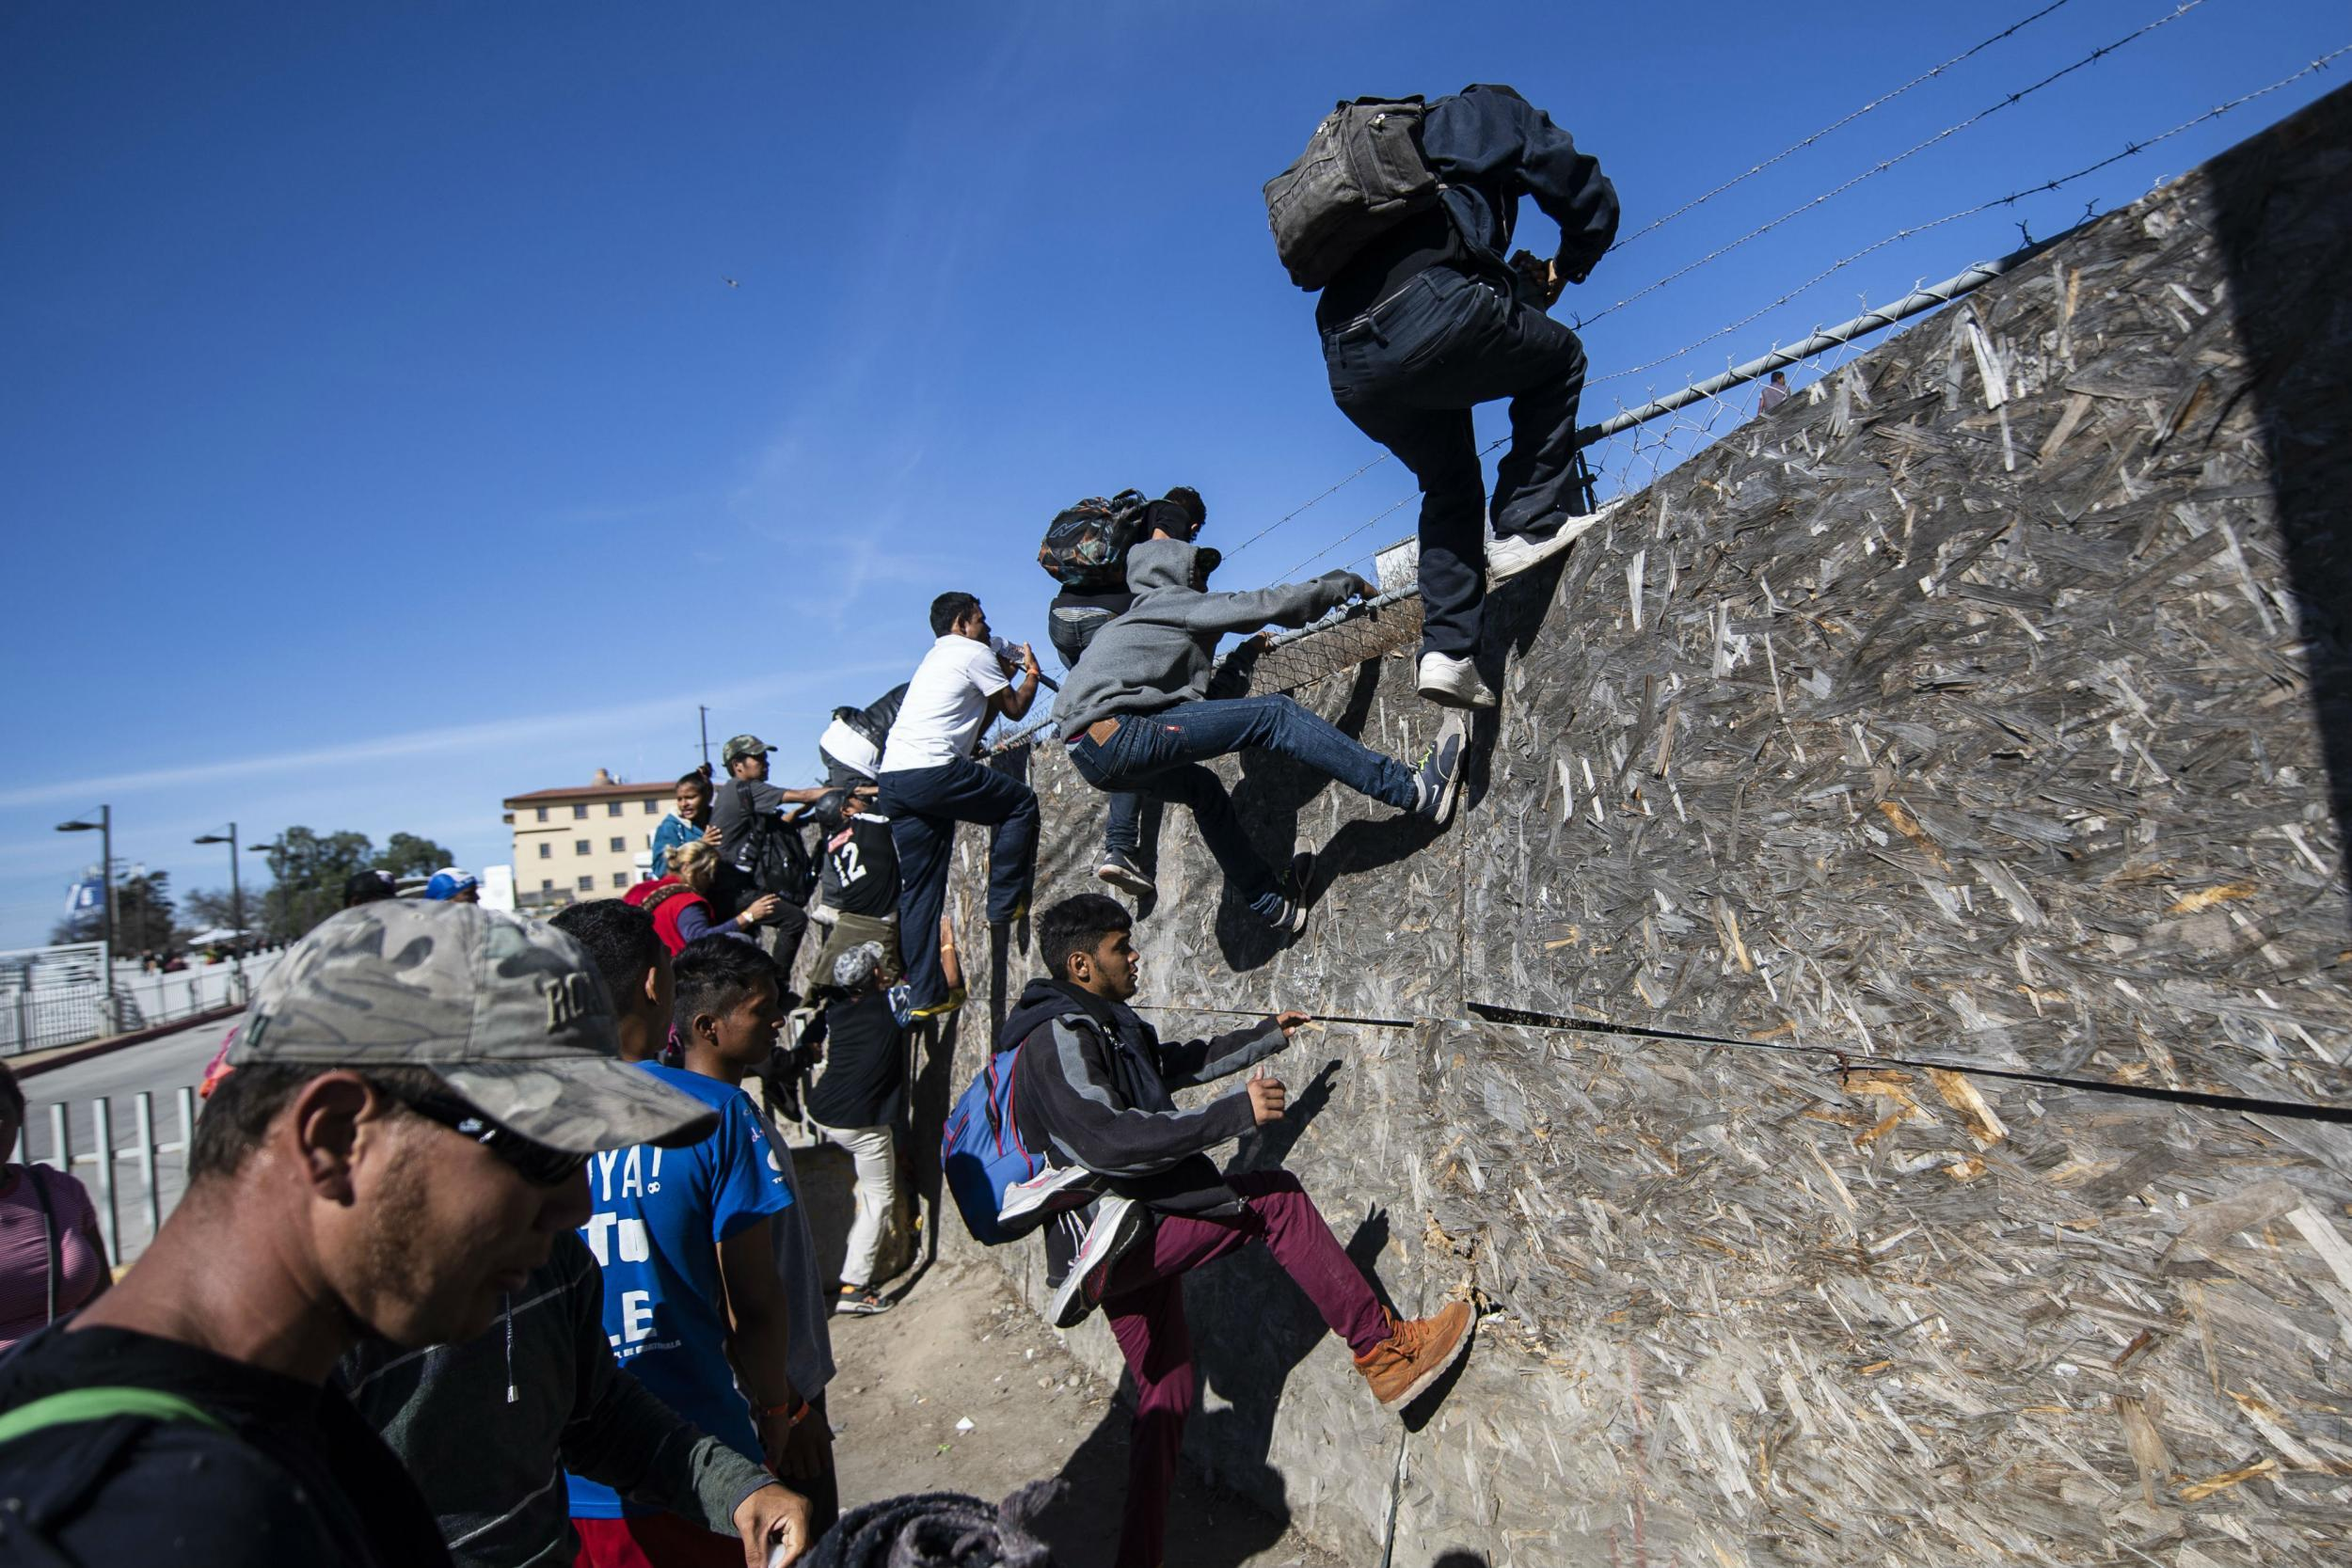 Mexico to immediately deport 500 migrants who 'violently and illegally' tried to cross US border